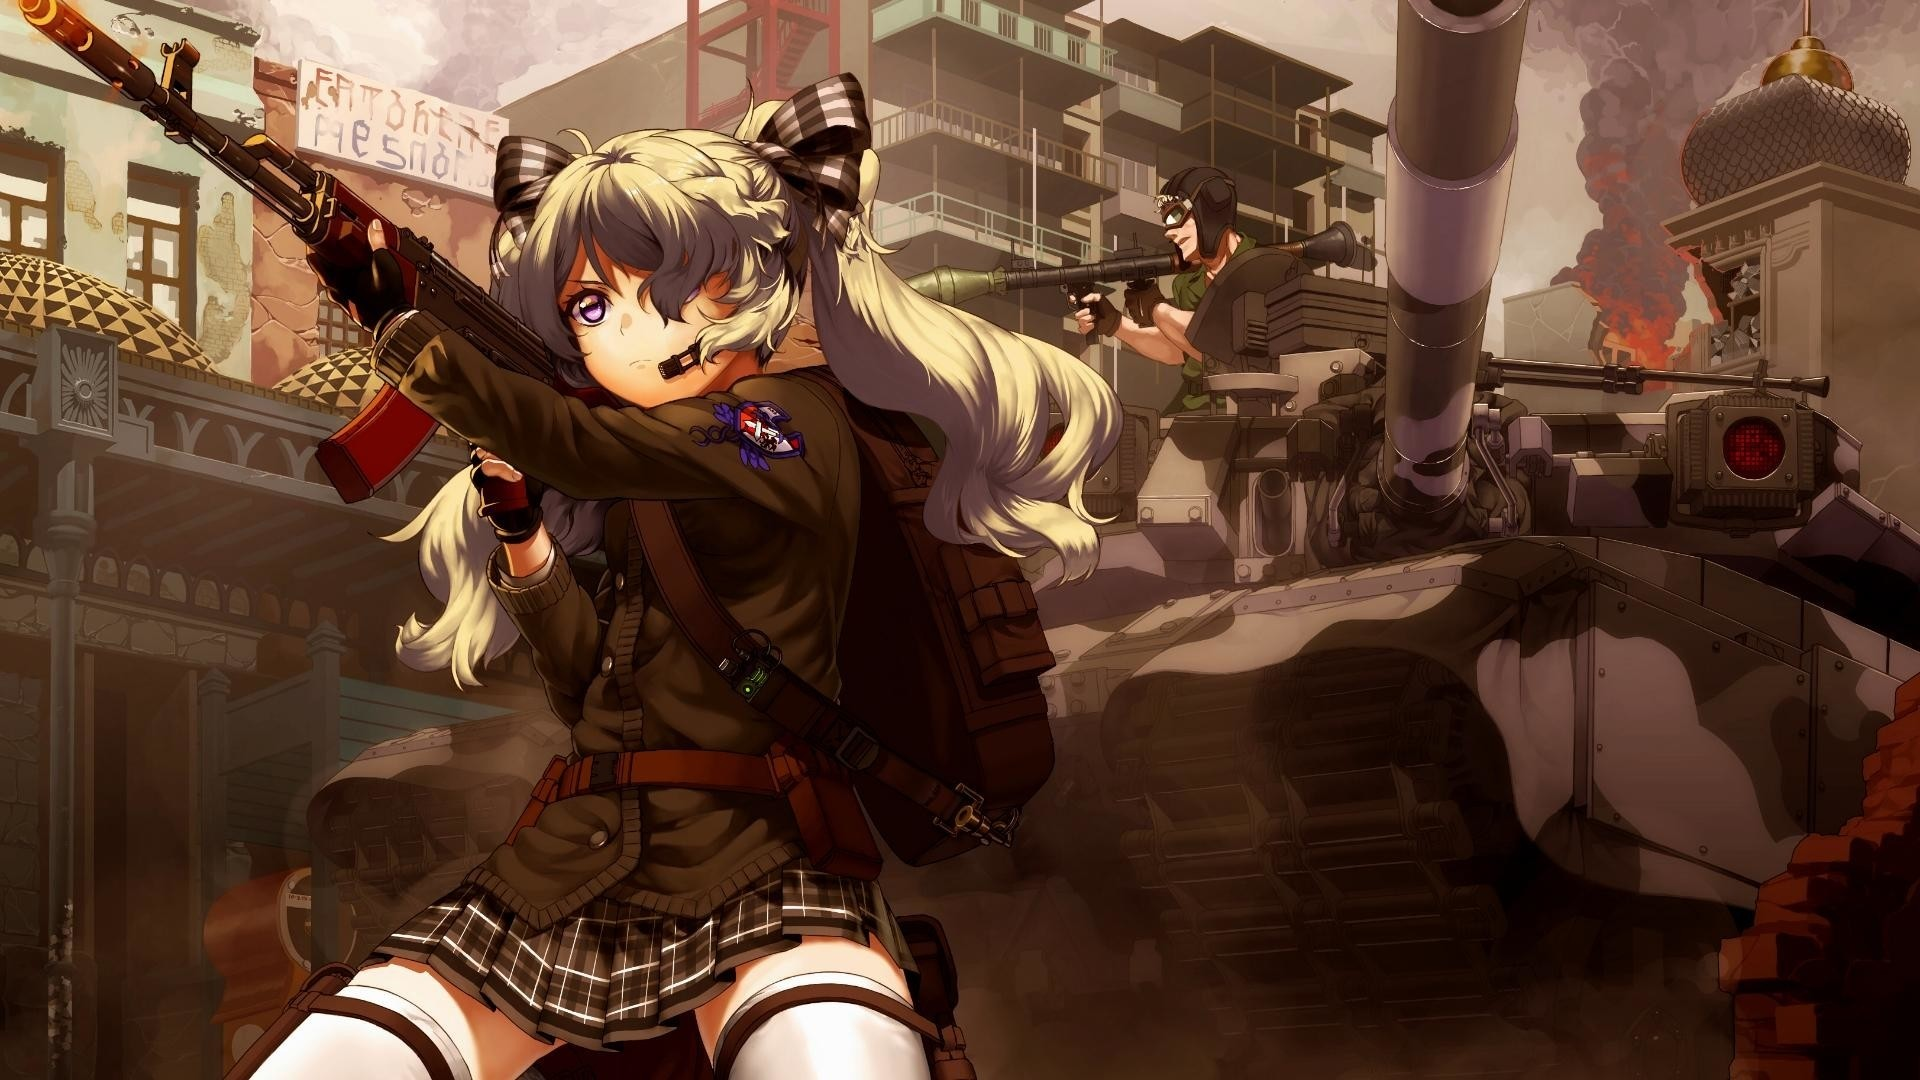 Anime Girls With Guns Wallpaper For Pc